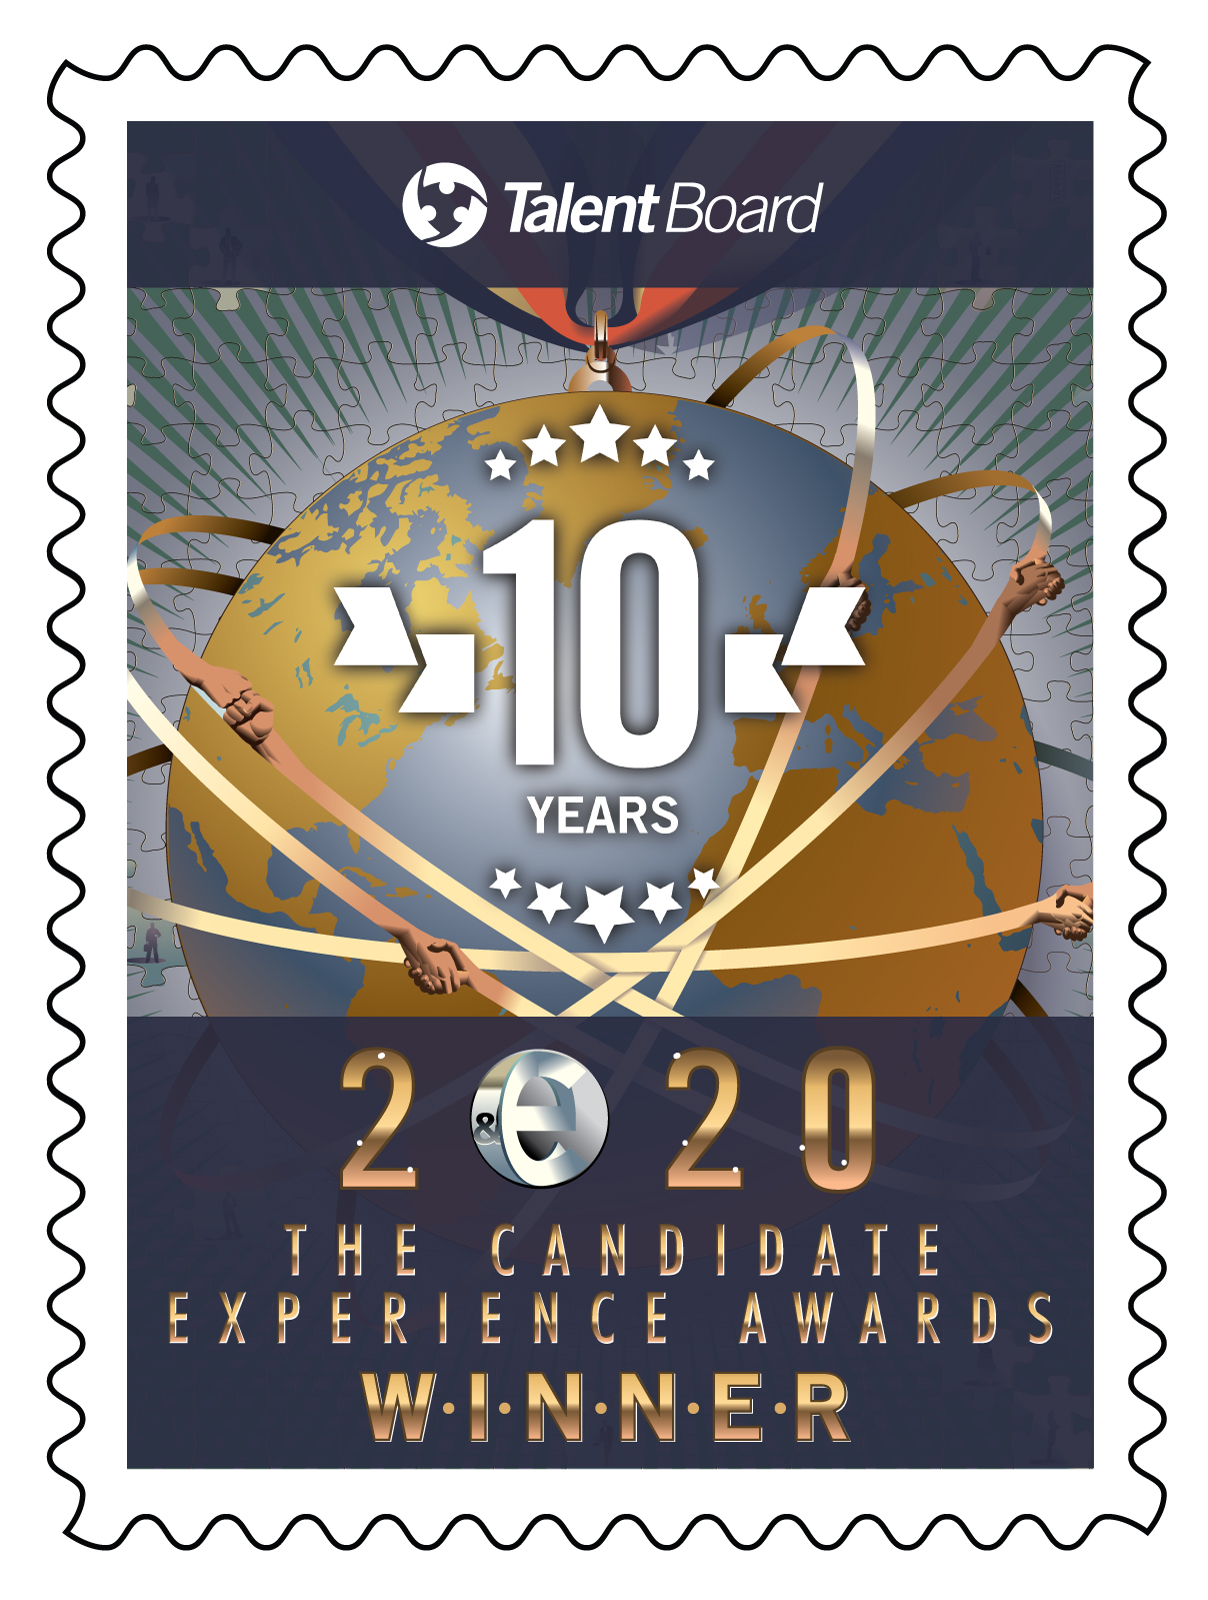 2020 The Candidate Experience Awards